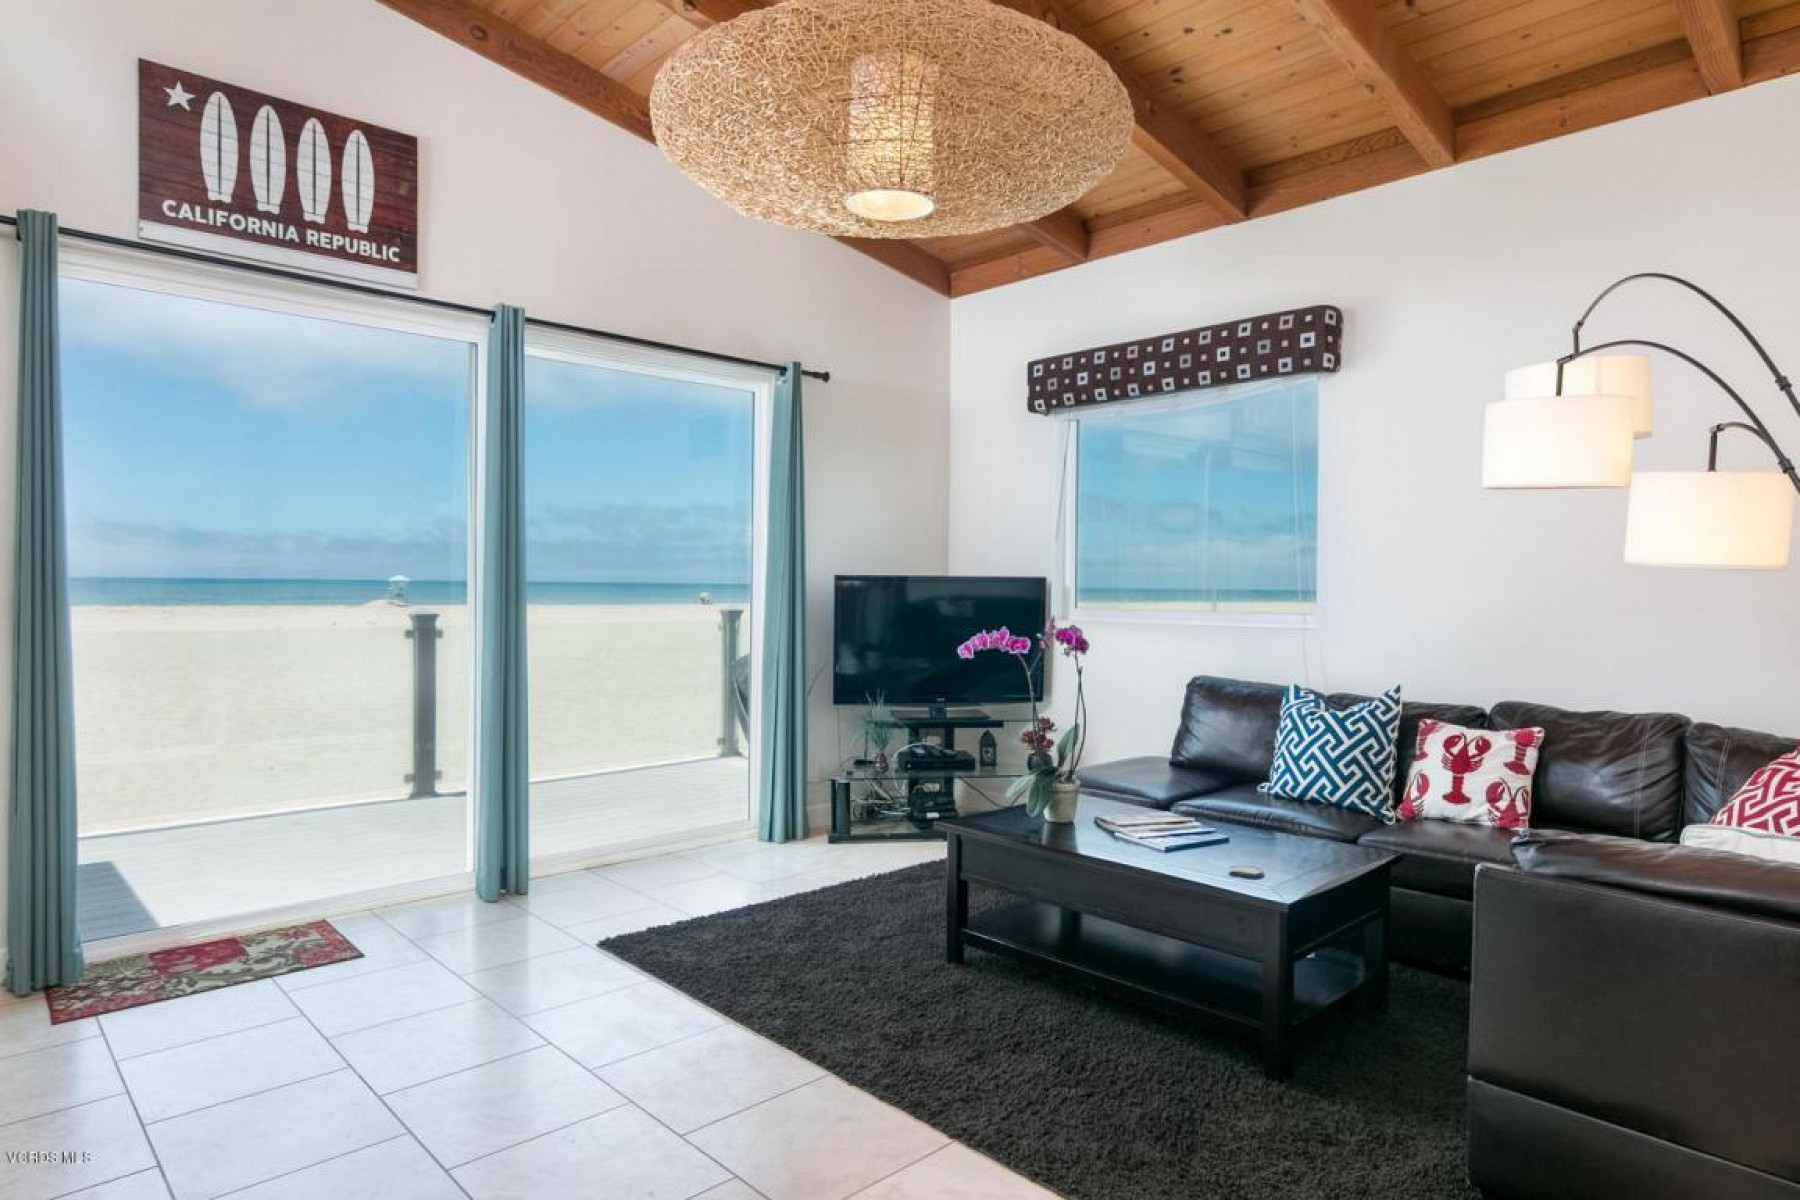 3549 Ocean Drive, Hollywood Beach, CA 93035